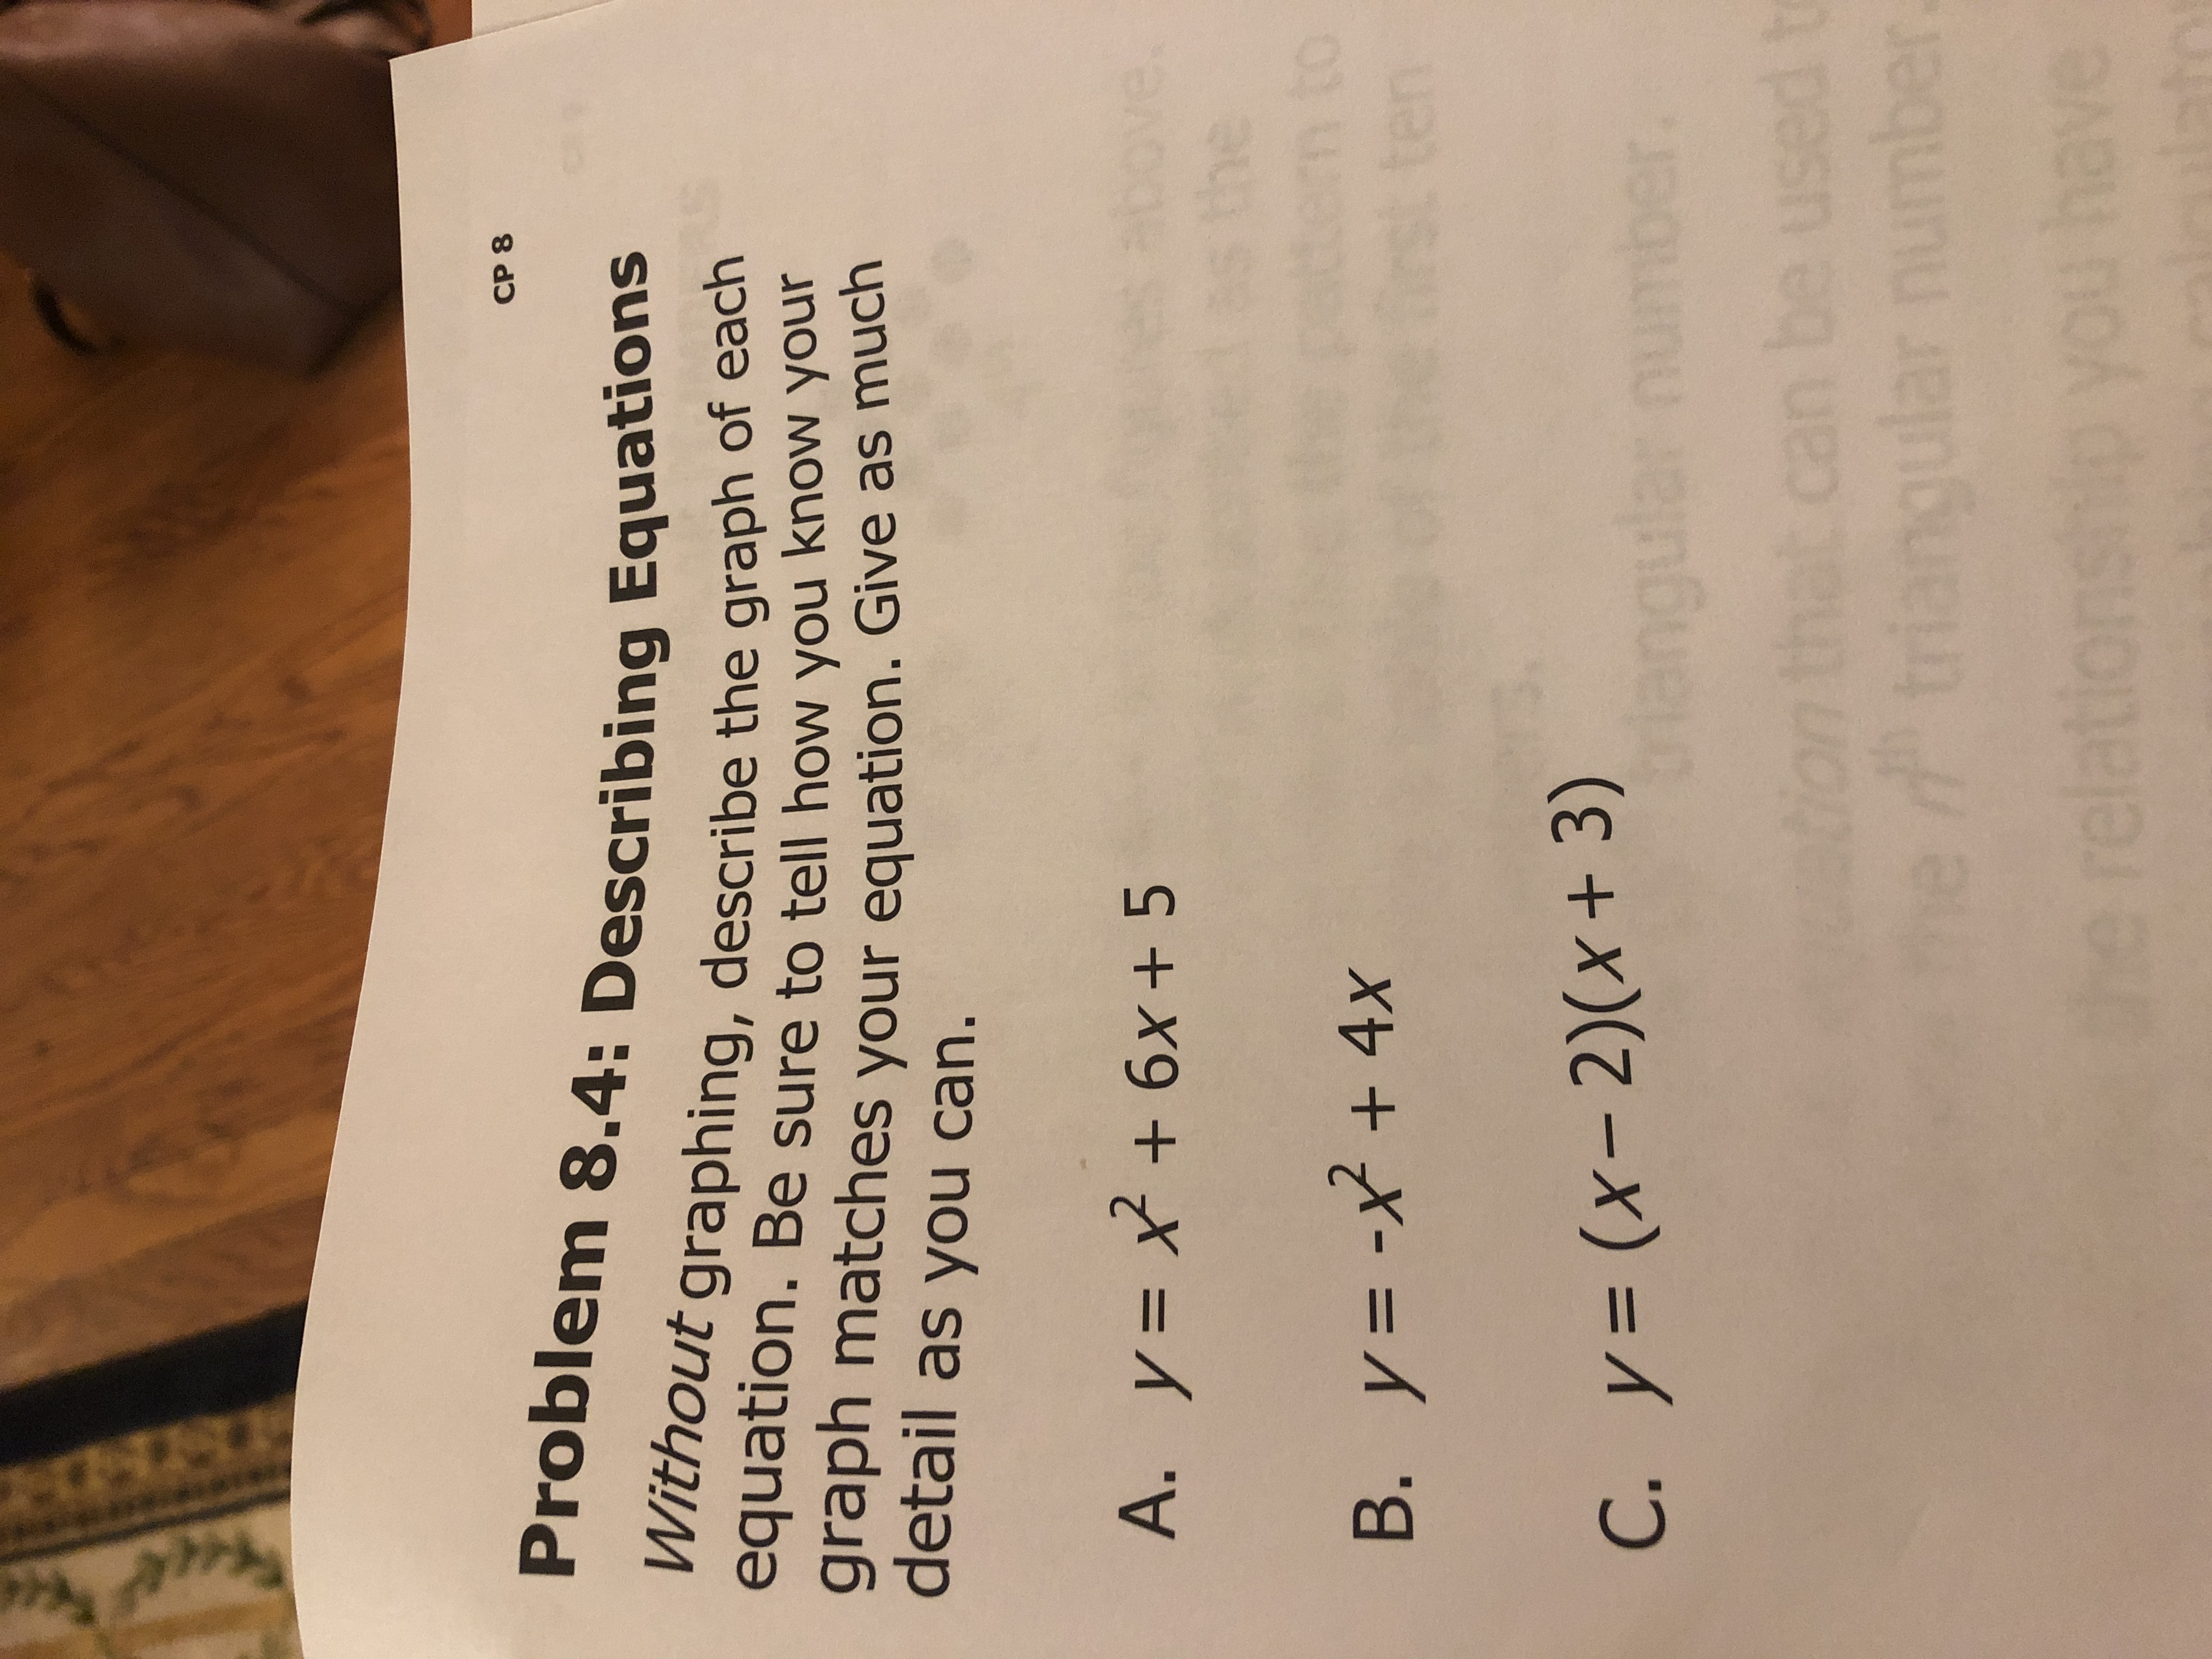 СР 8 Problem 8.4: Describing Equations Without graphing, describe the graph of each equation. Be sure to tell how you know your graph matches equation. Give as much detail as you can. your bove. the tem to ten A. y 6x+ 5 А. у - B. y= -x+ 4x C. y= (x- 2)(x + 3) g С. у%3D ton that can be used triangular number e ave Iotat relation